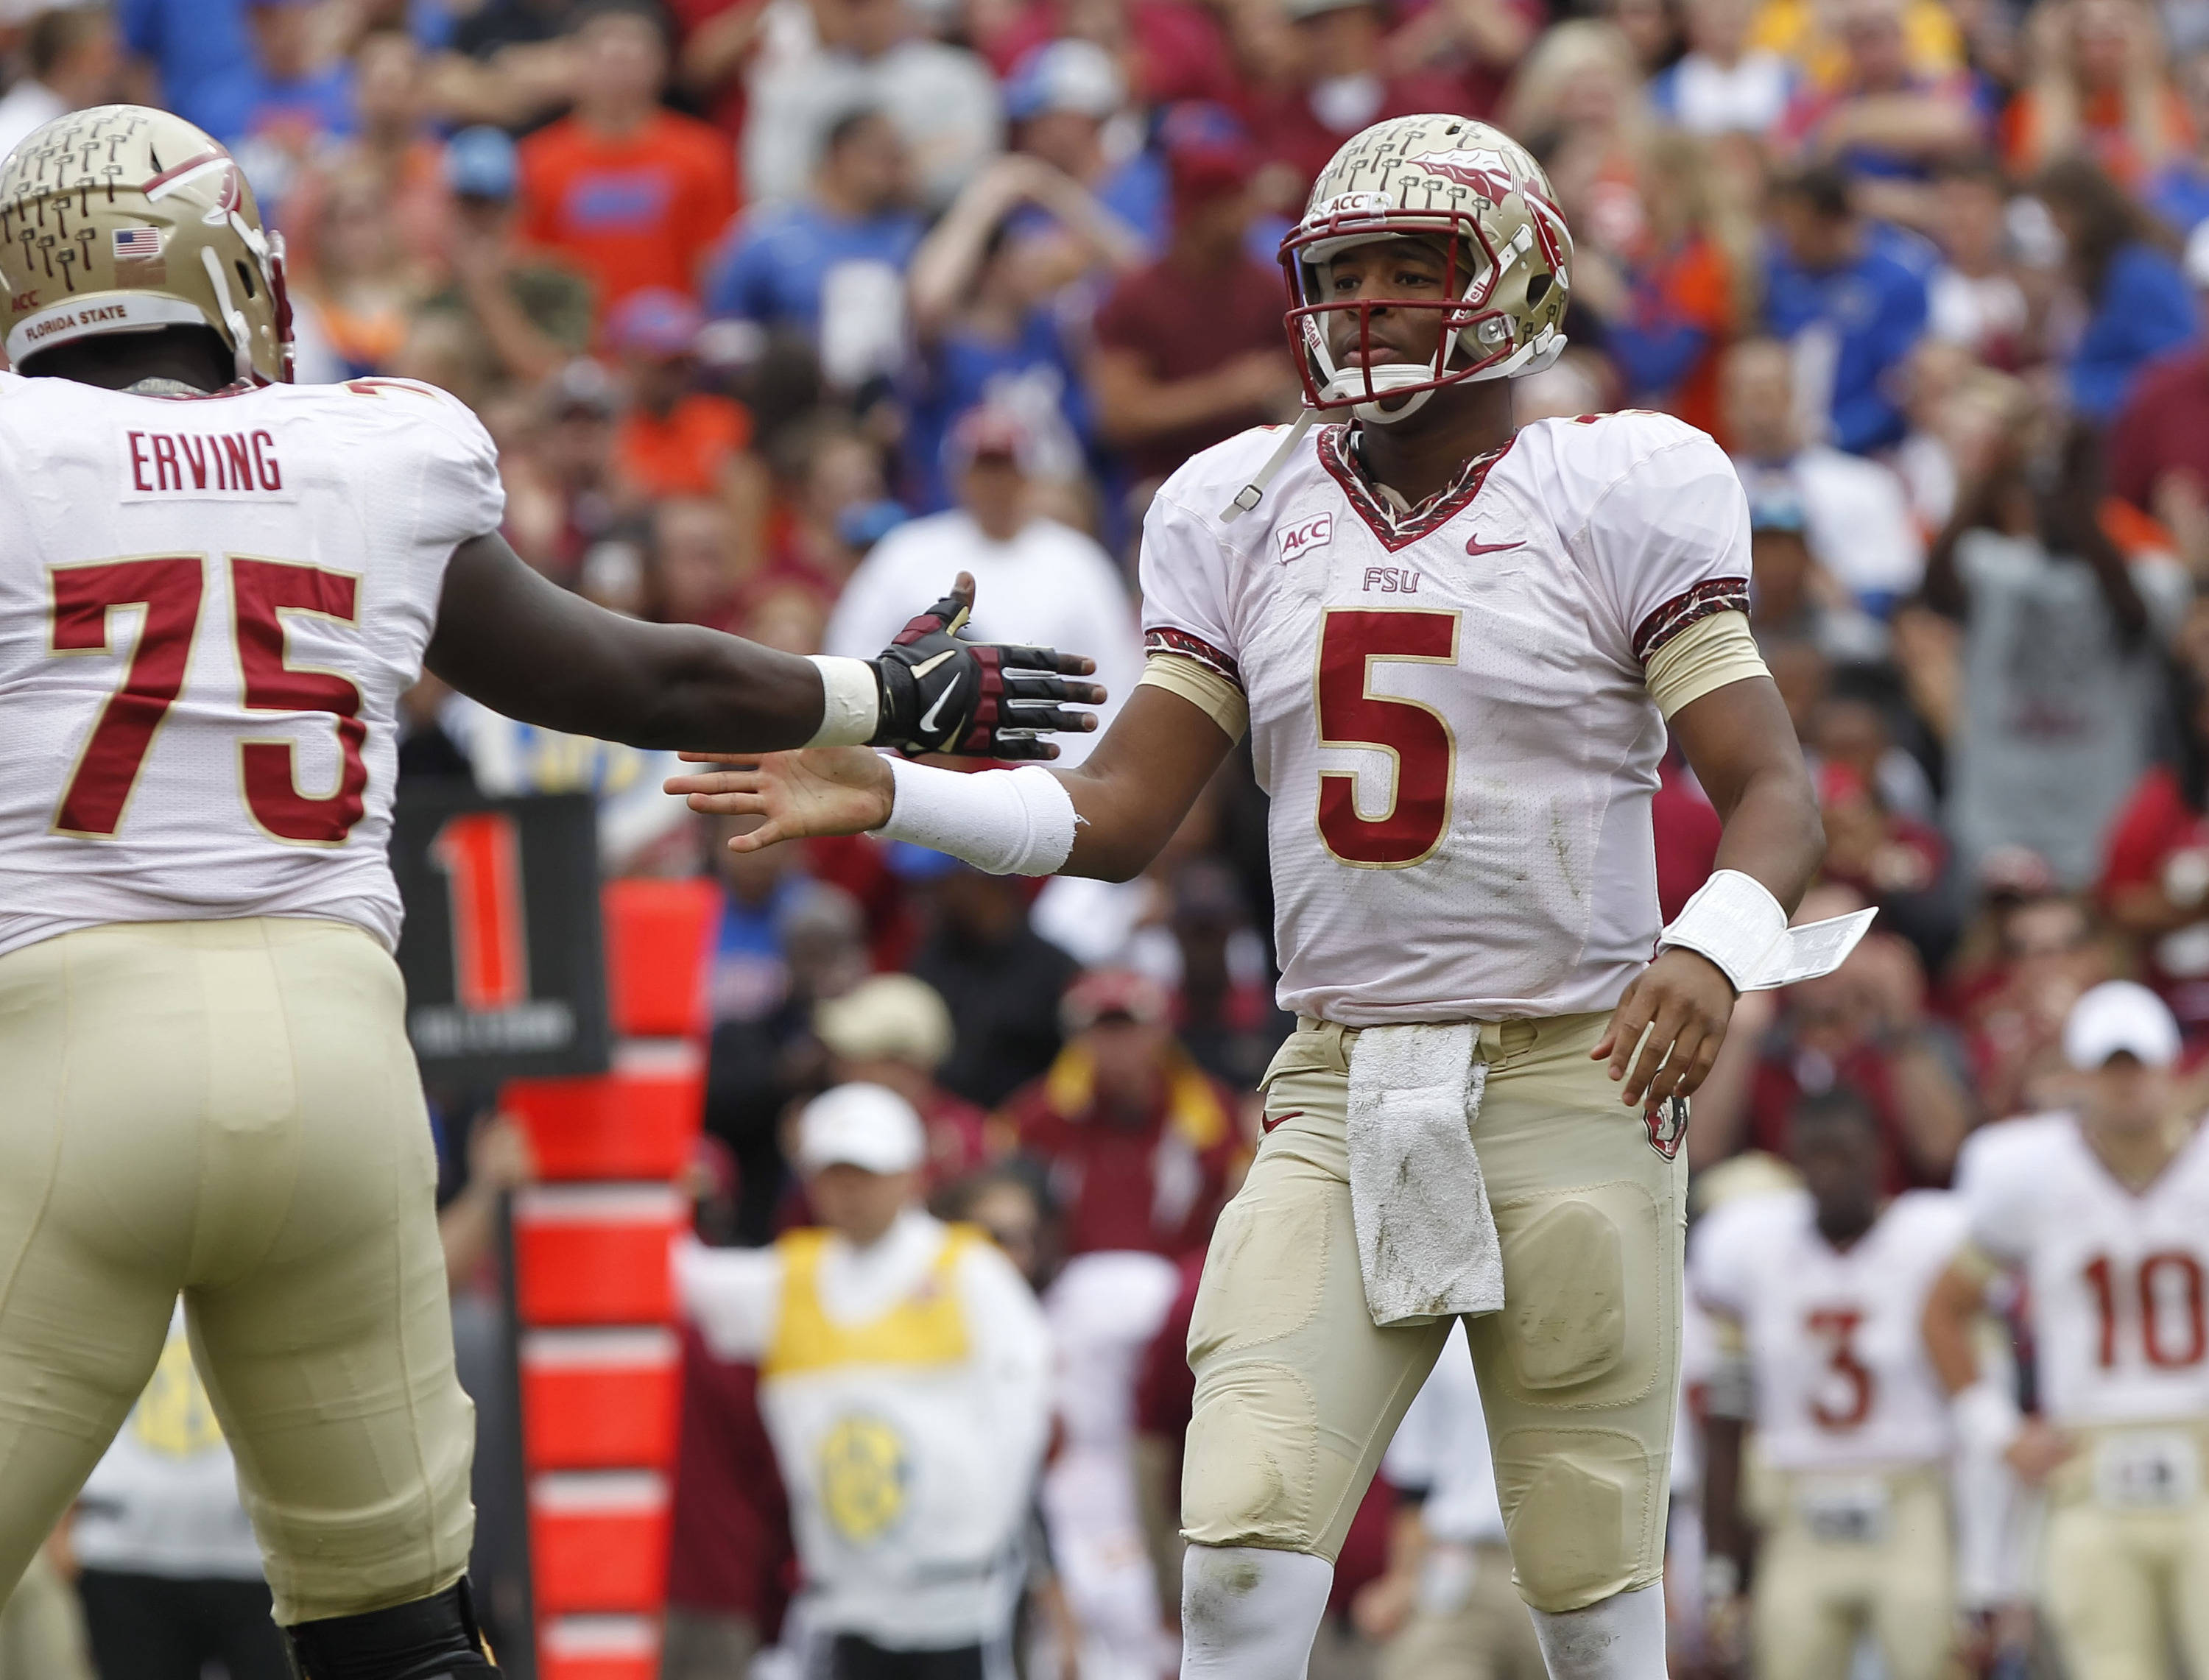 Jameis Winston (5) high fives offensive linesman Cameron Erving (75). Mandatory Credit: Kim Klement-USA TODAY Sports